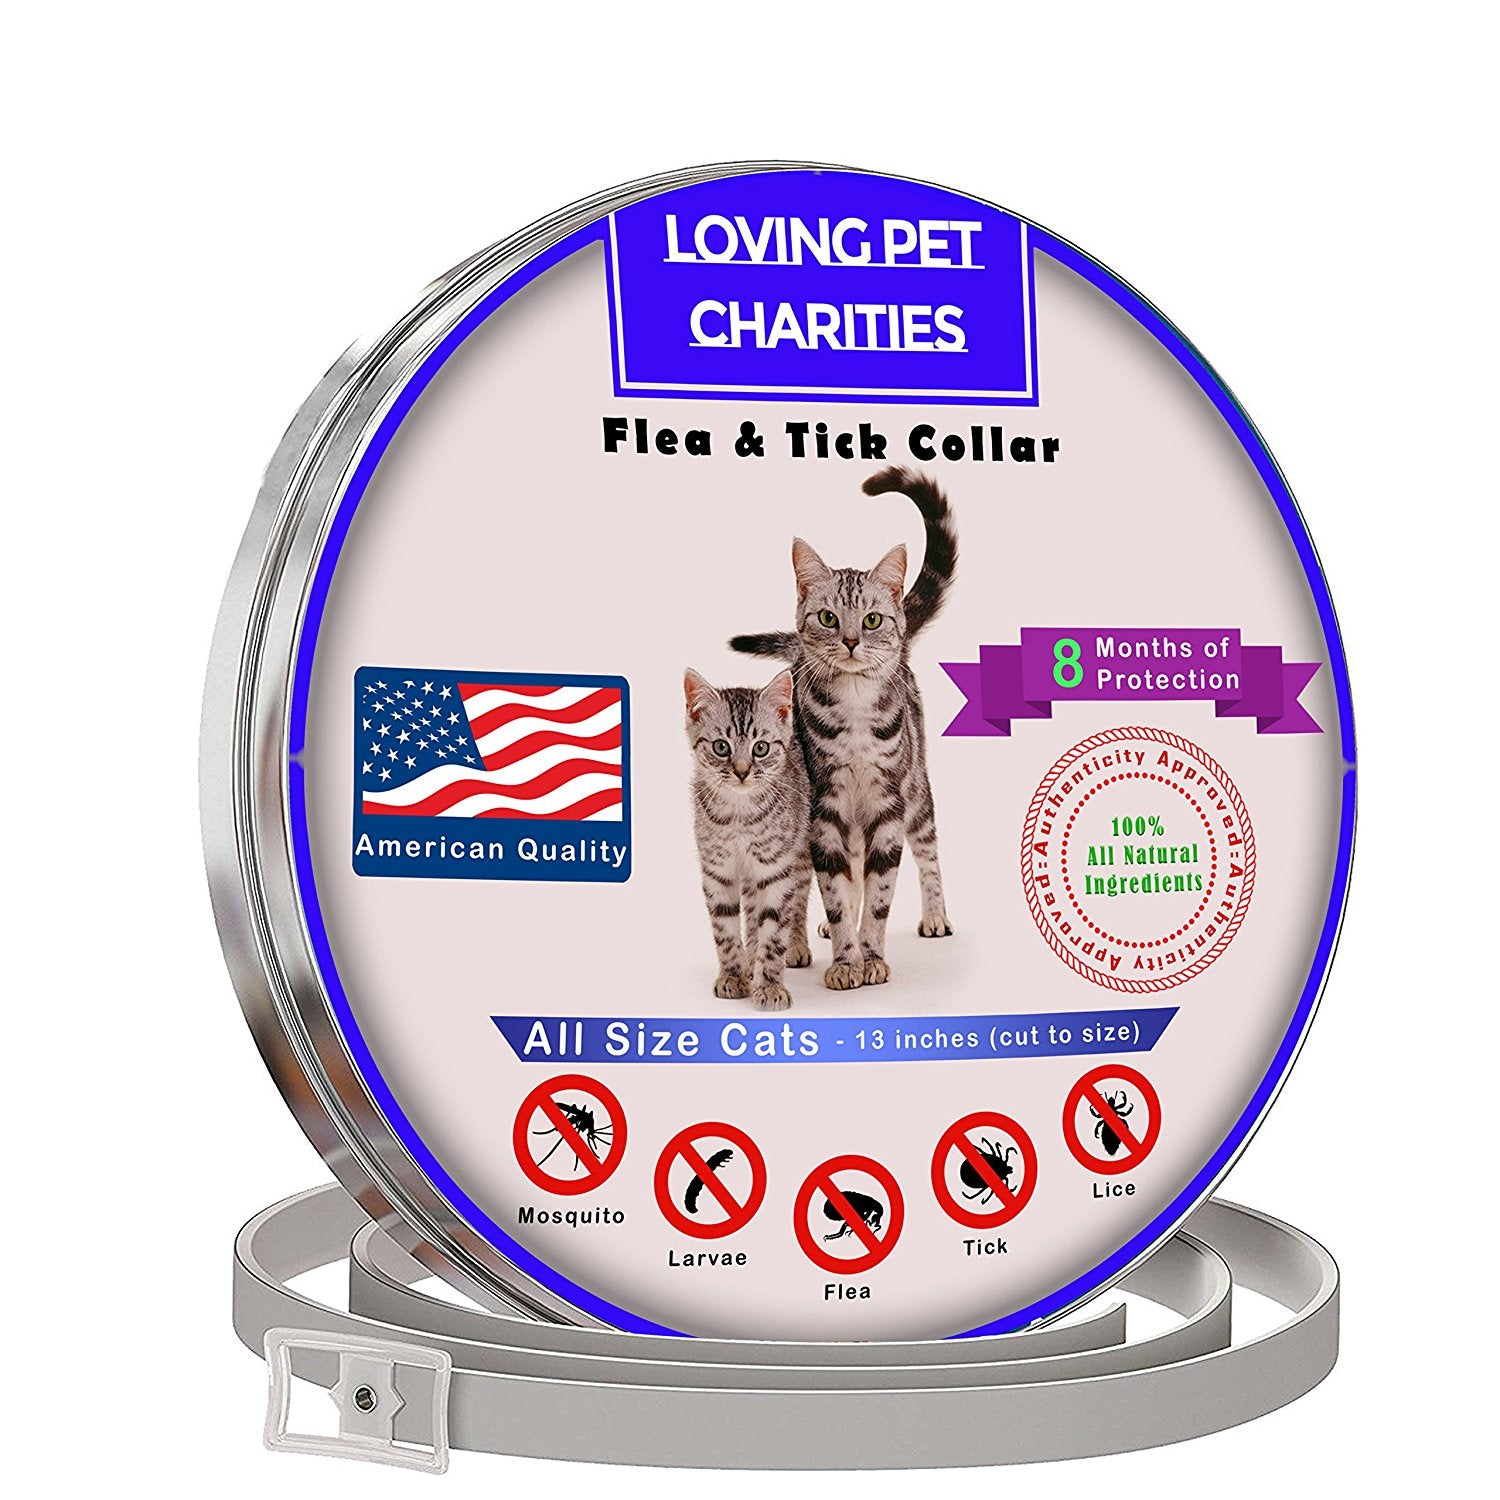 All Natural Flea And Tick Collar For Cats